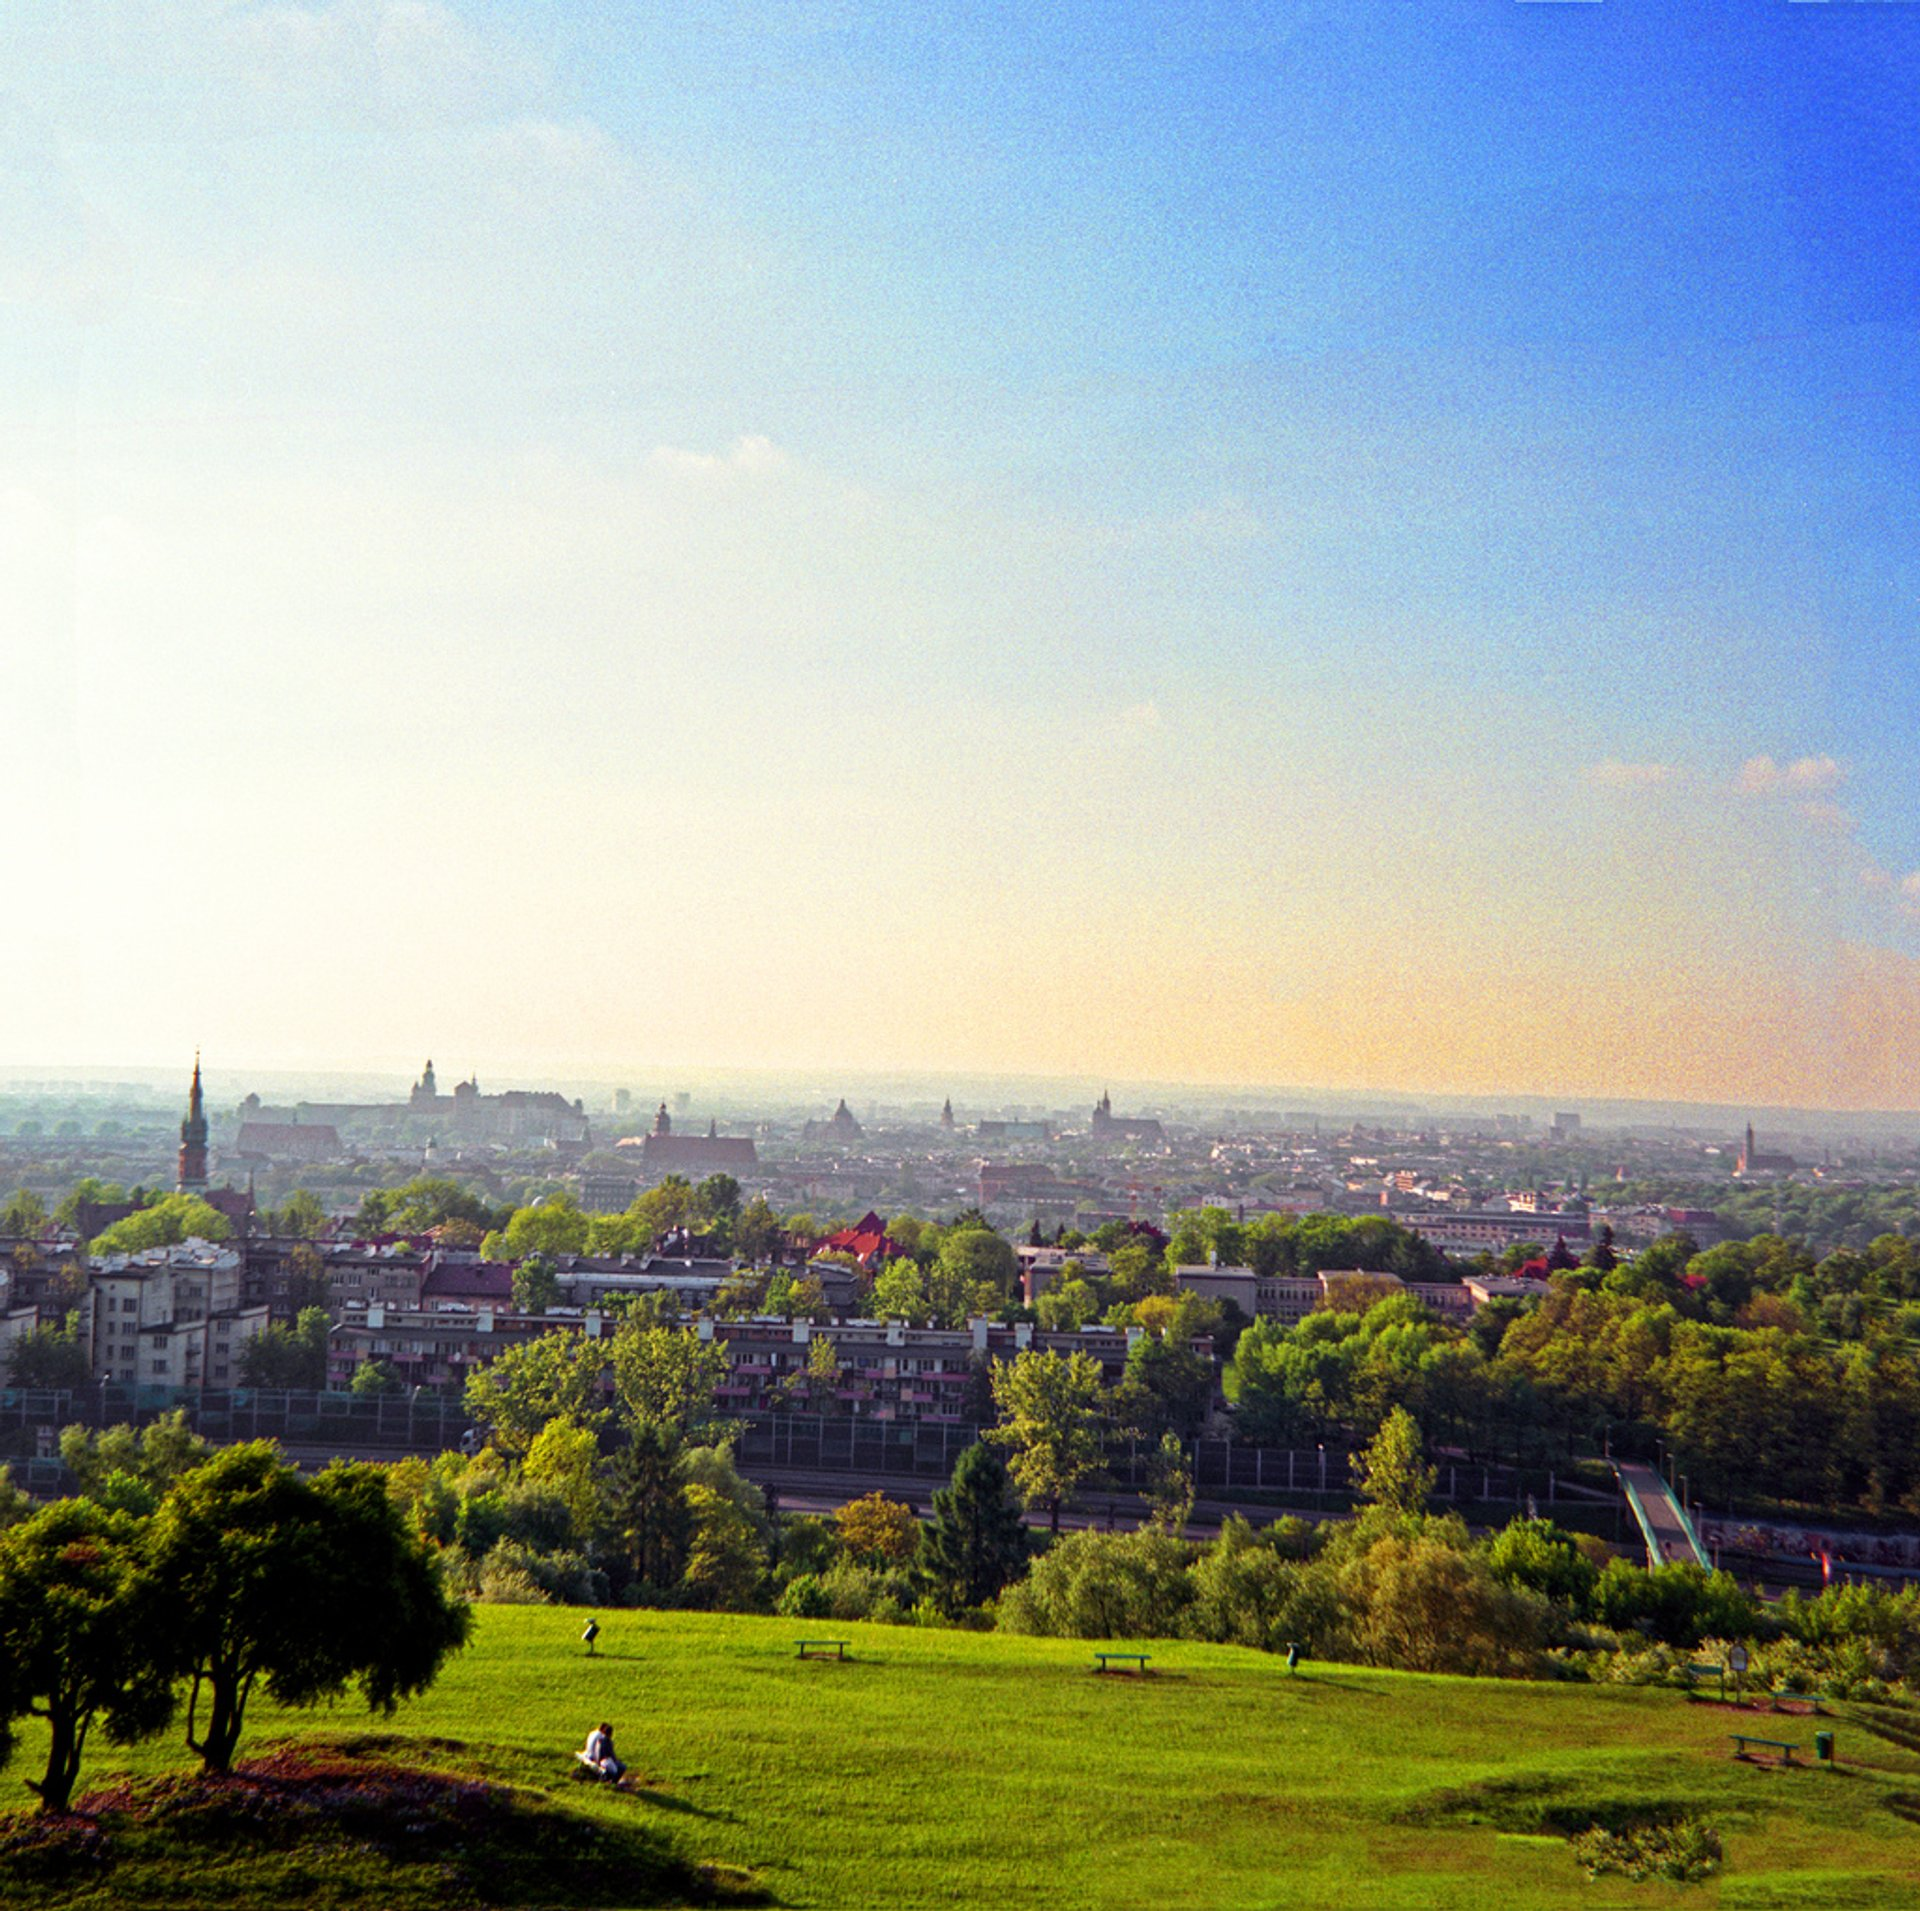 The green fields around the Krakus Mound—panorama of Krakow